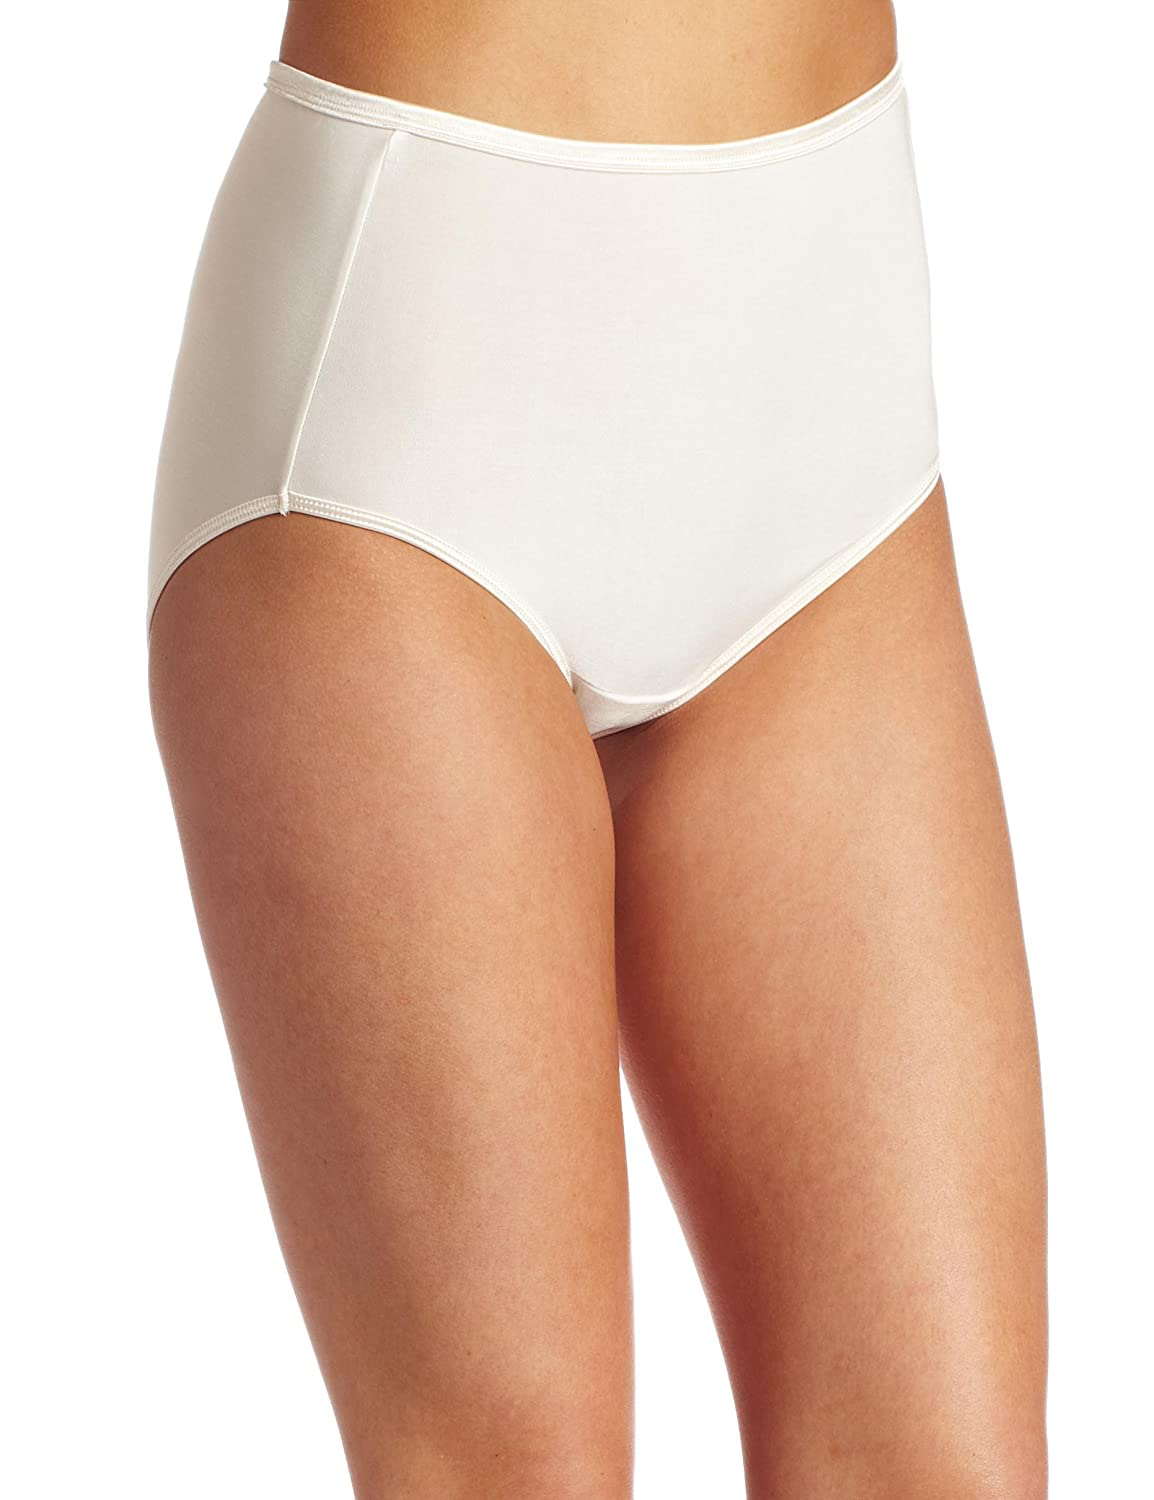 Vanity Fair Women's Body Shine Illumination Brief Panty 13109 Vanity Fair Women' s IA